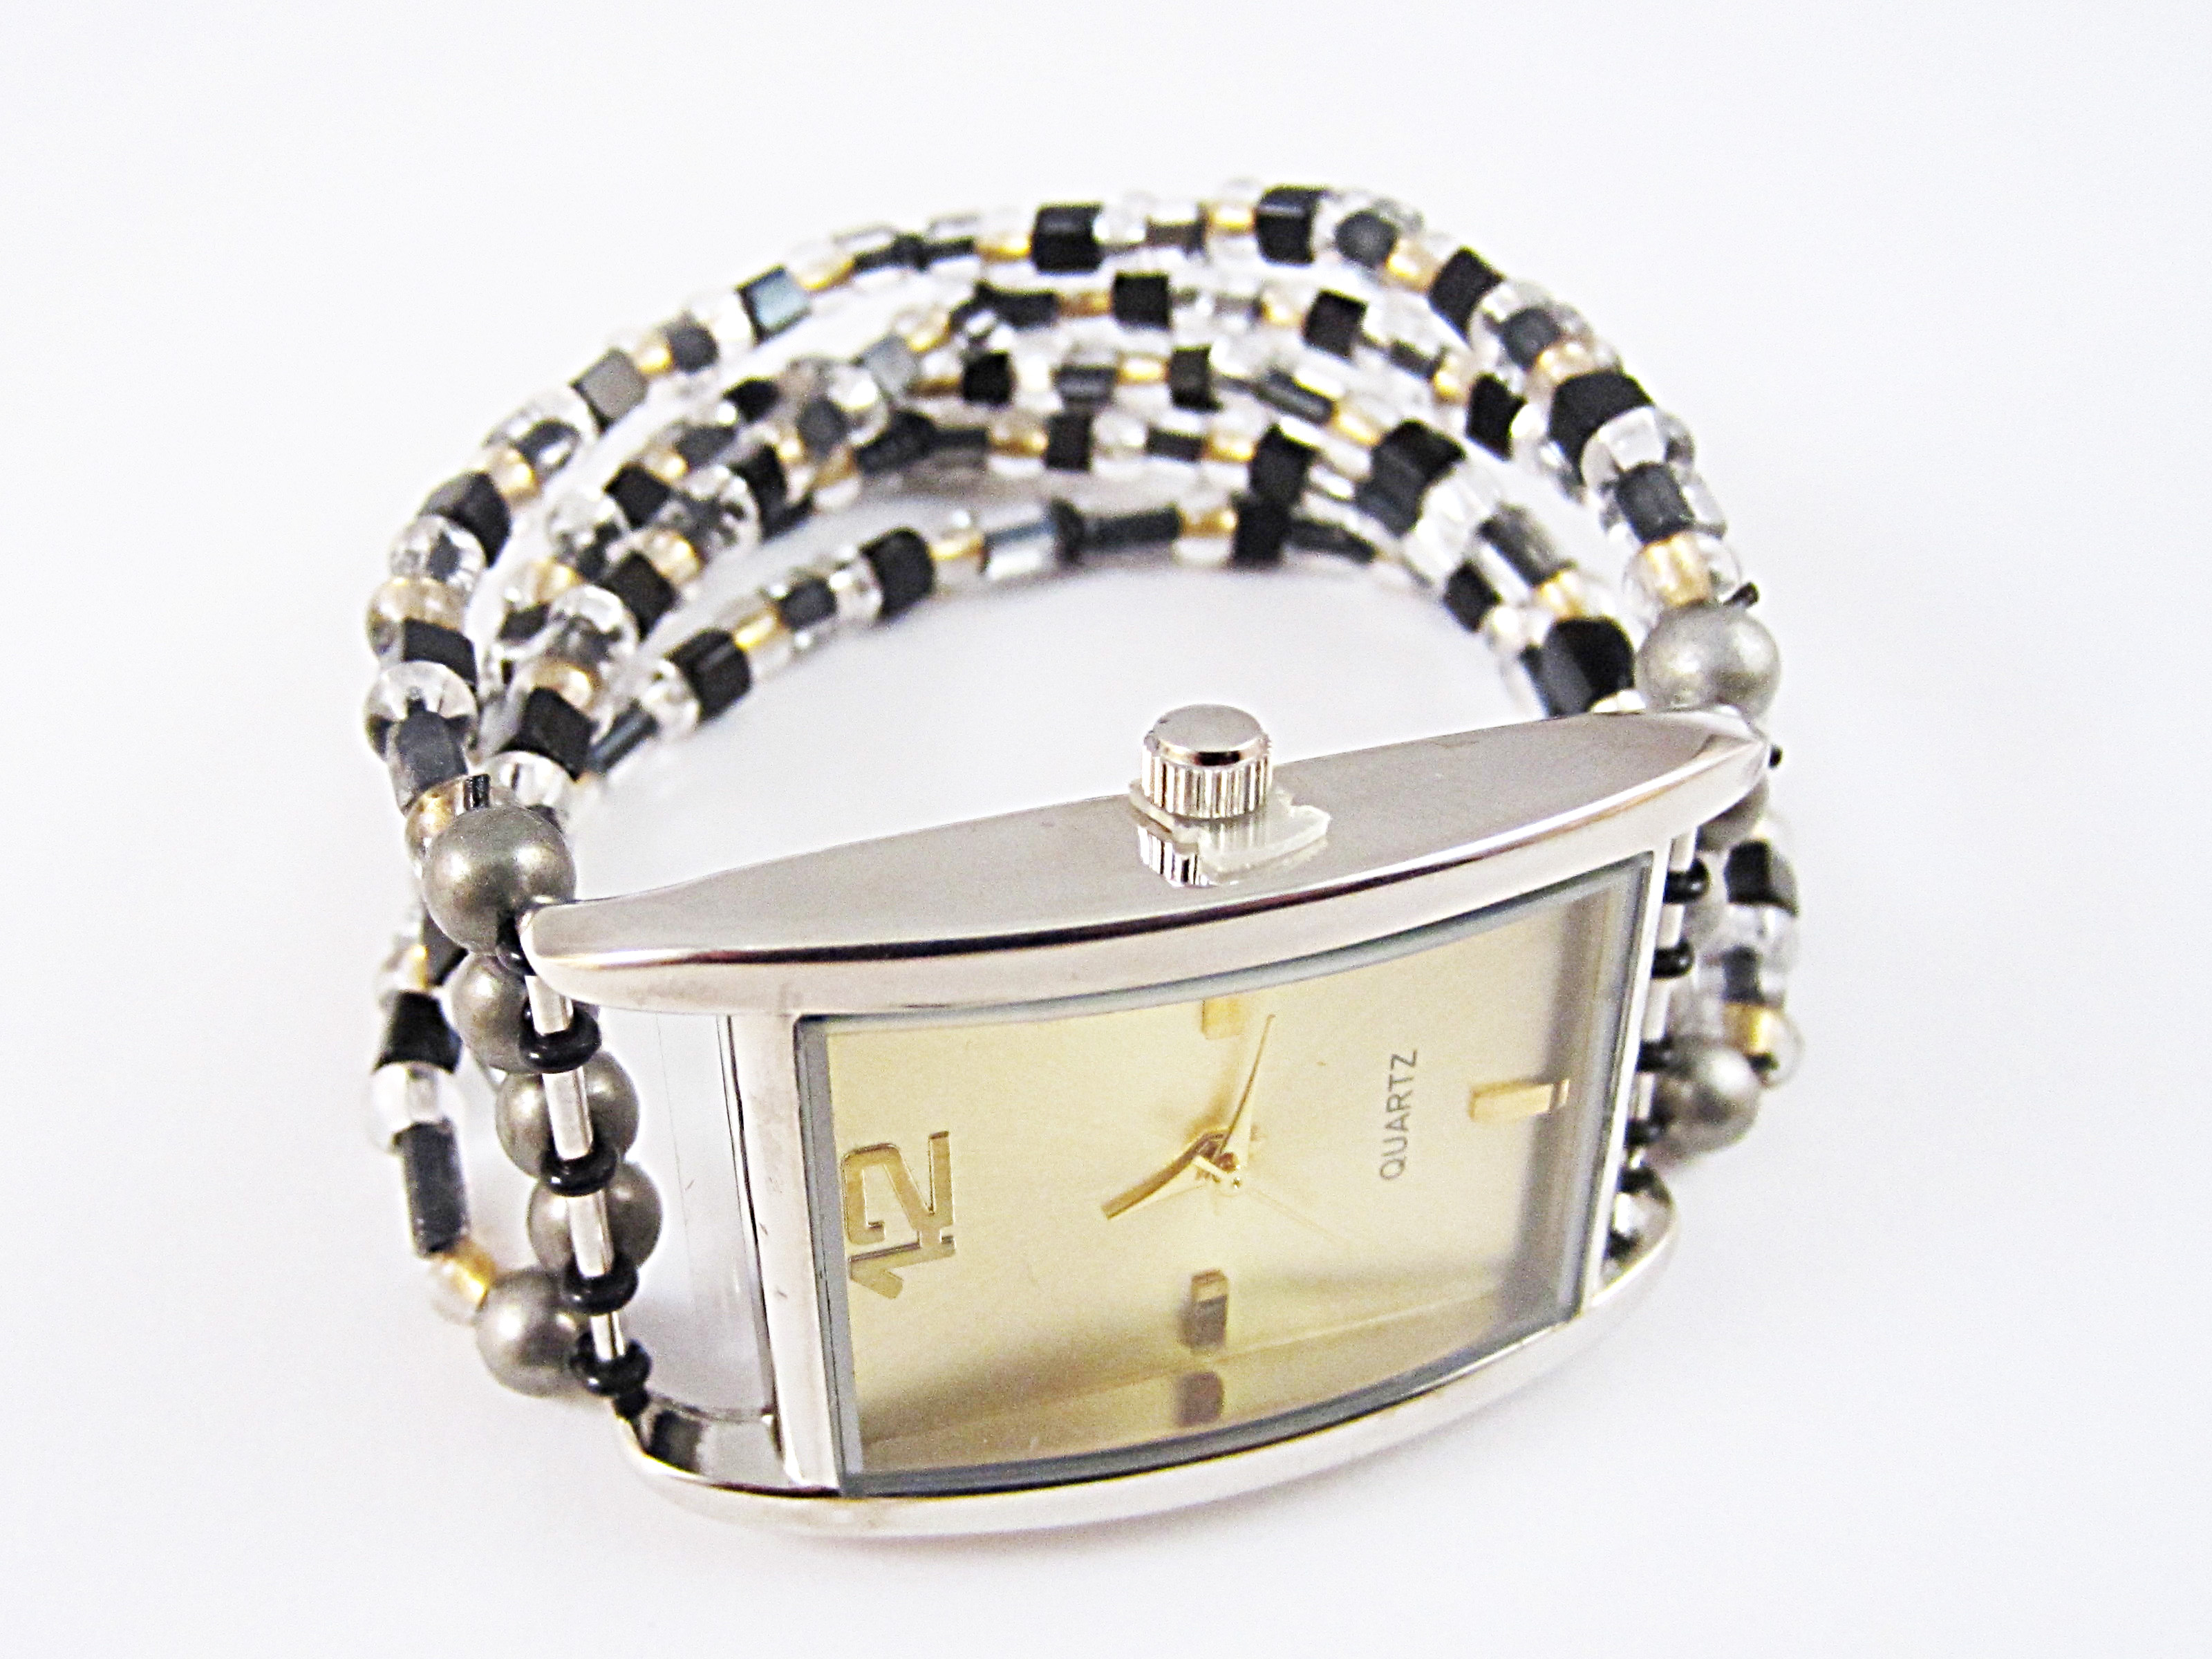 BRACELET WITH WATCH FACE & SEED BEADS